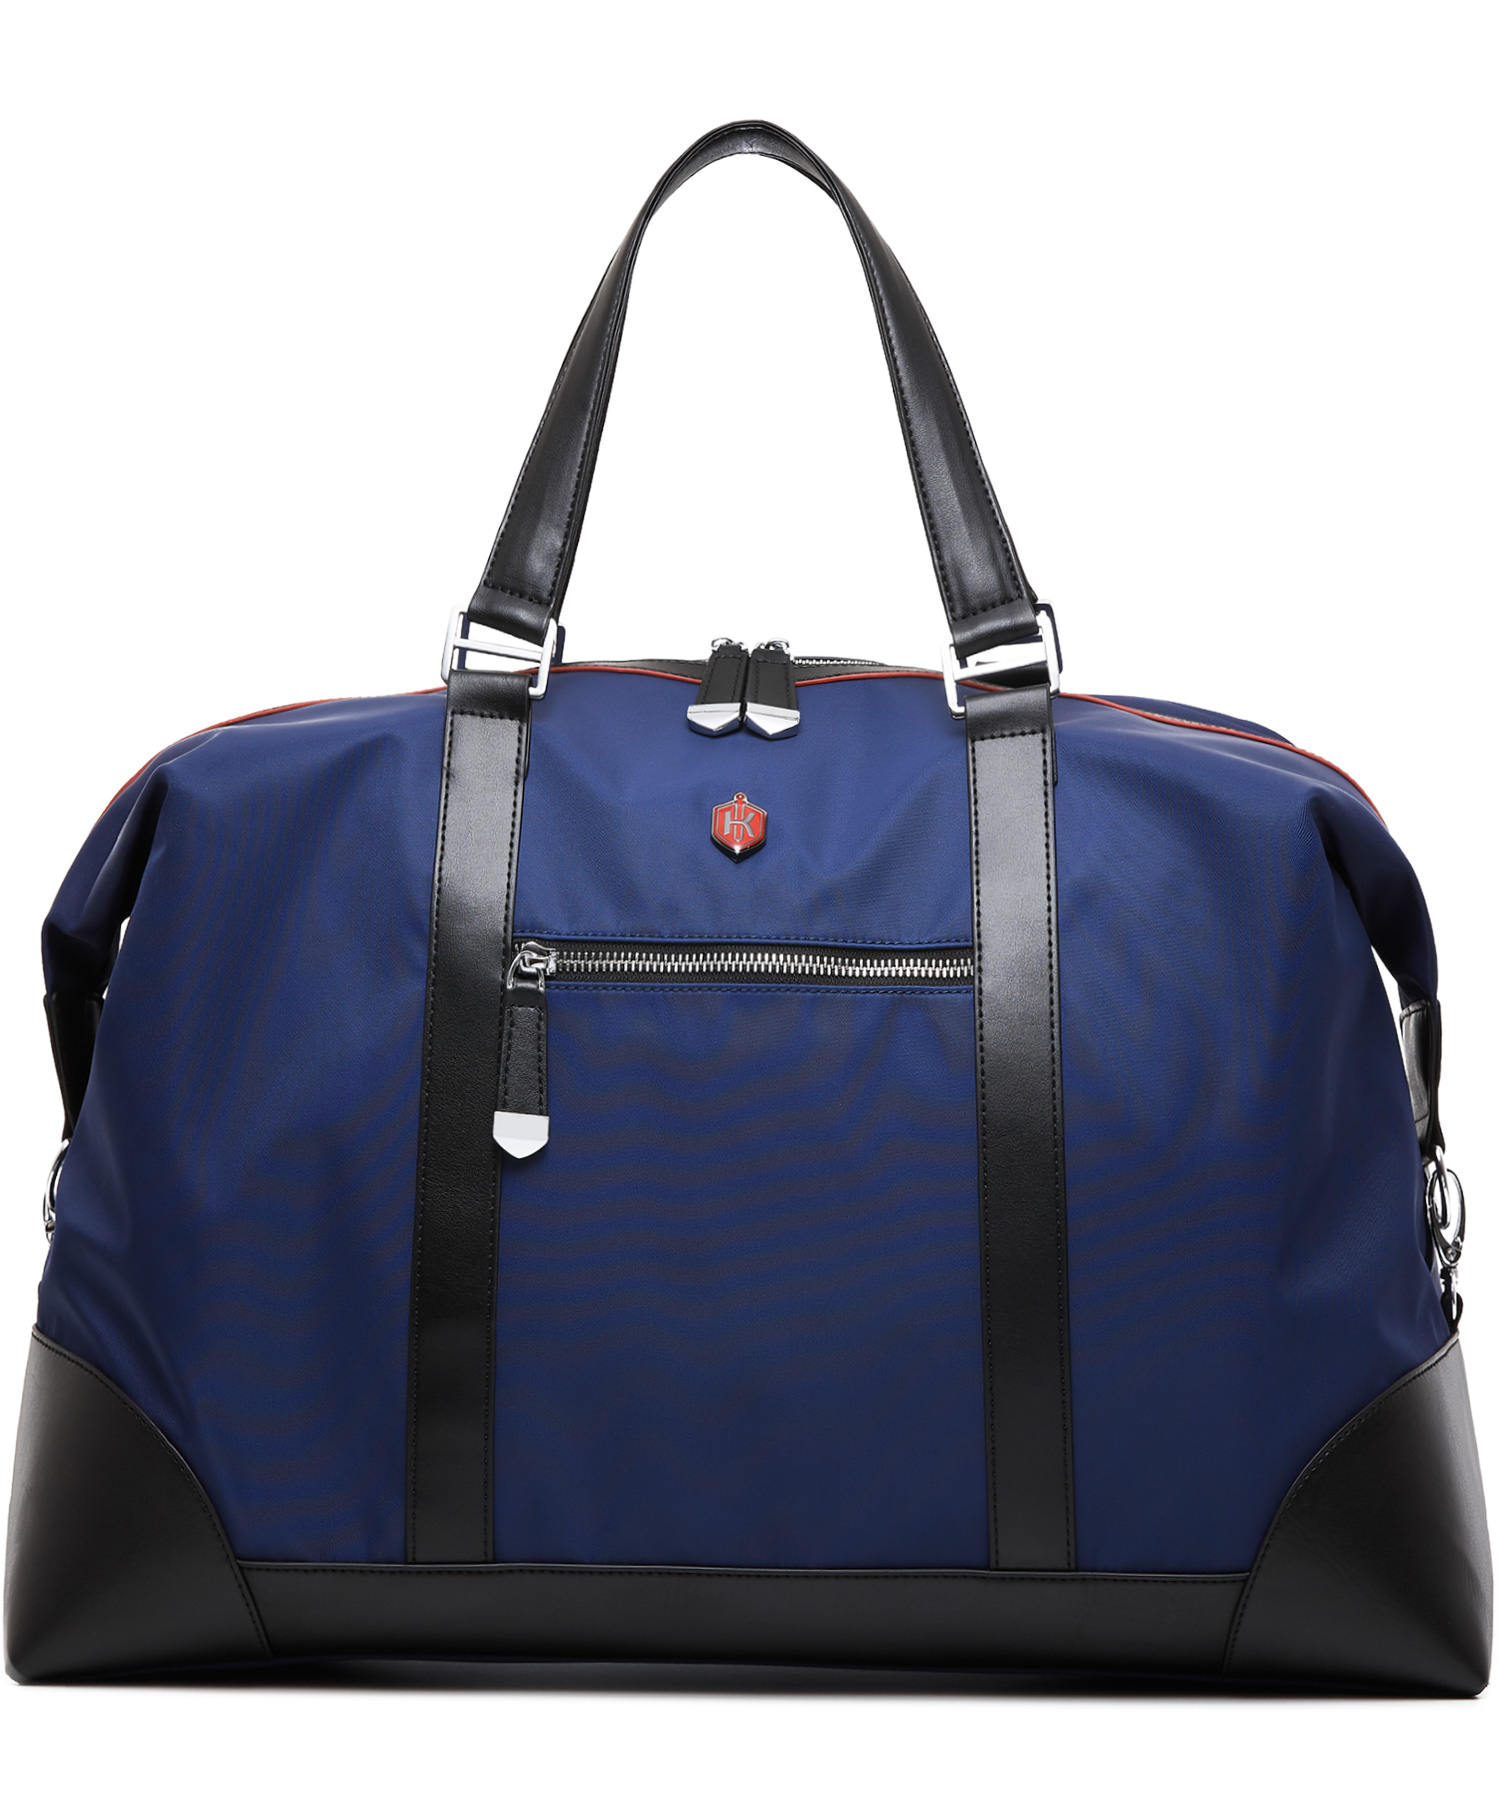 krimcode business duffel bag front